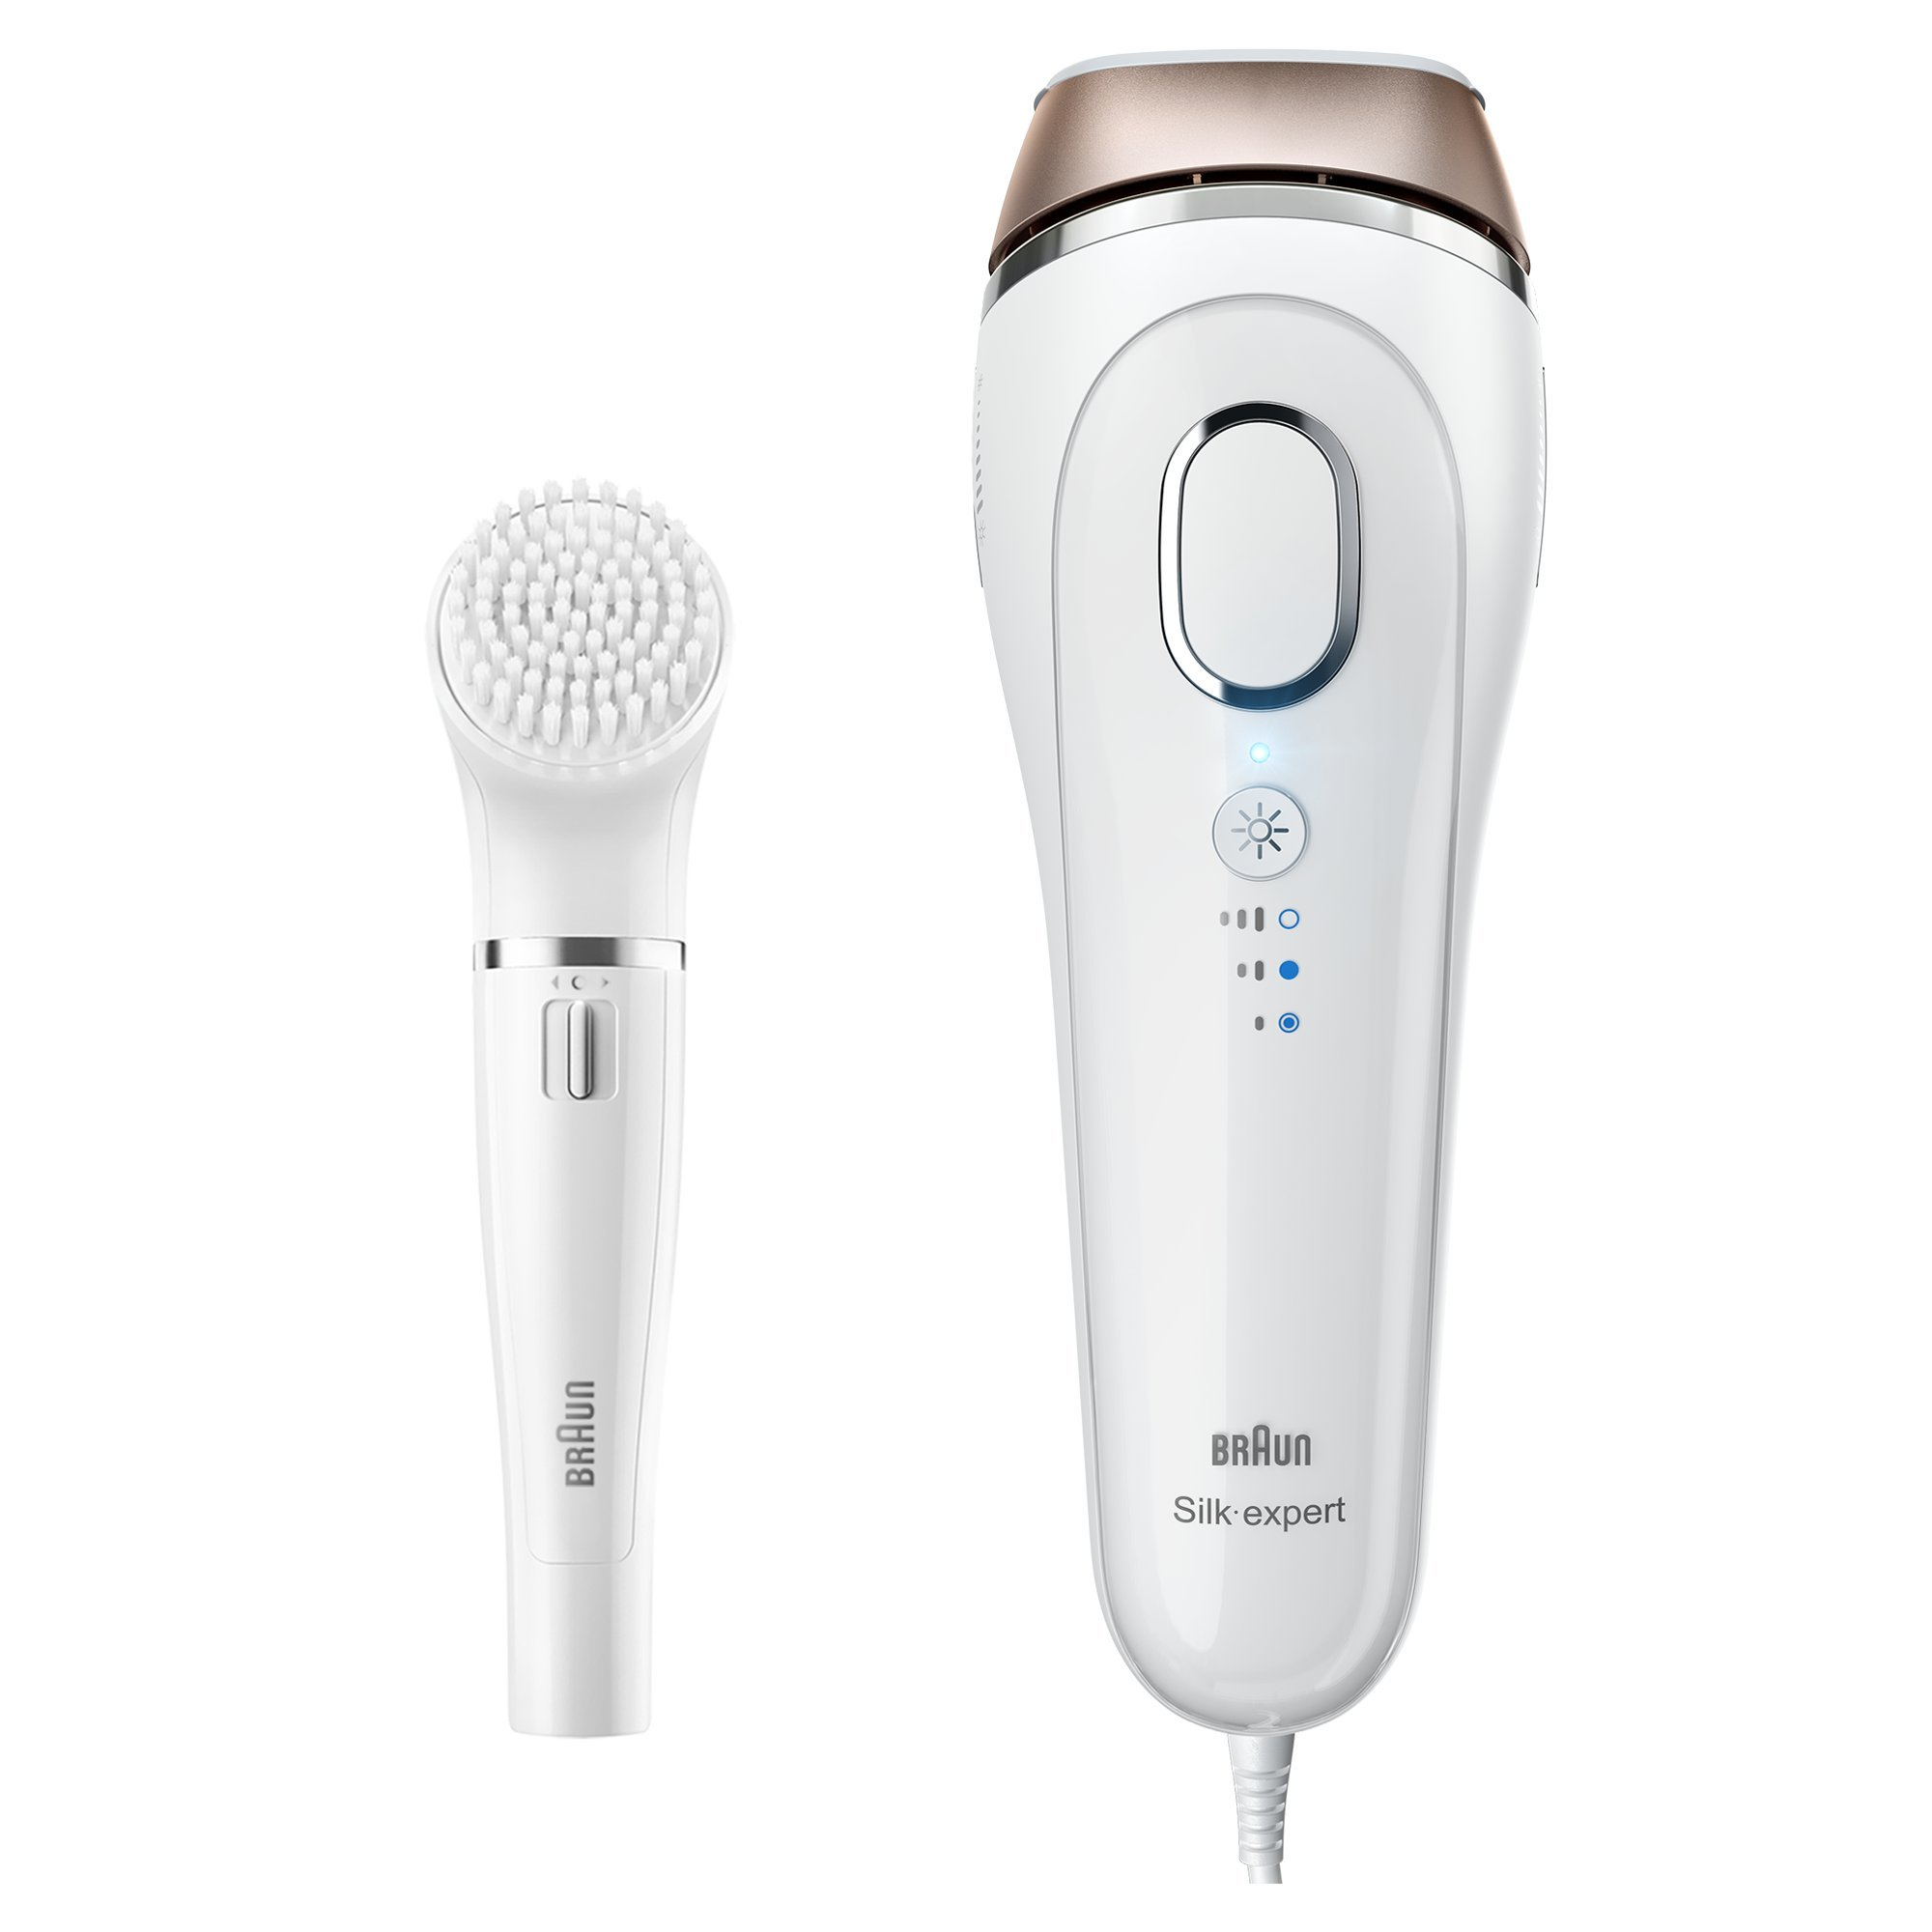 Braun Silk Expert 5 Ipl Hair Removal Bd 5008 Permanent Visible Hair Removal At Home For Body And Face Corded For Non Stop Use Braun Face Cleansing Brush White Bronze Buy Online